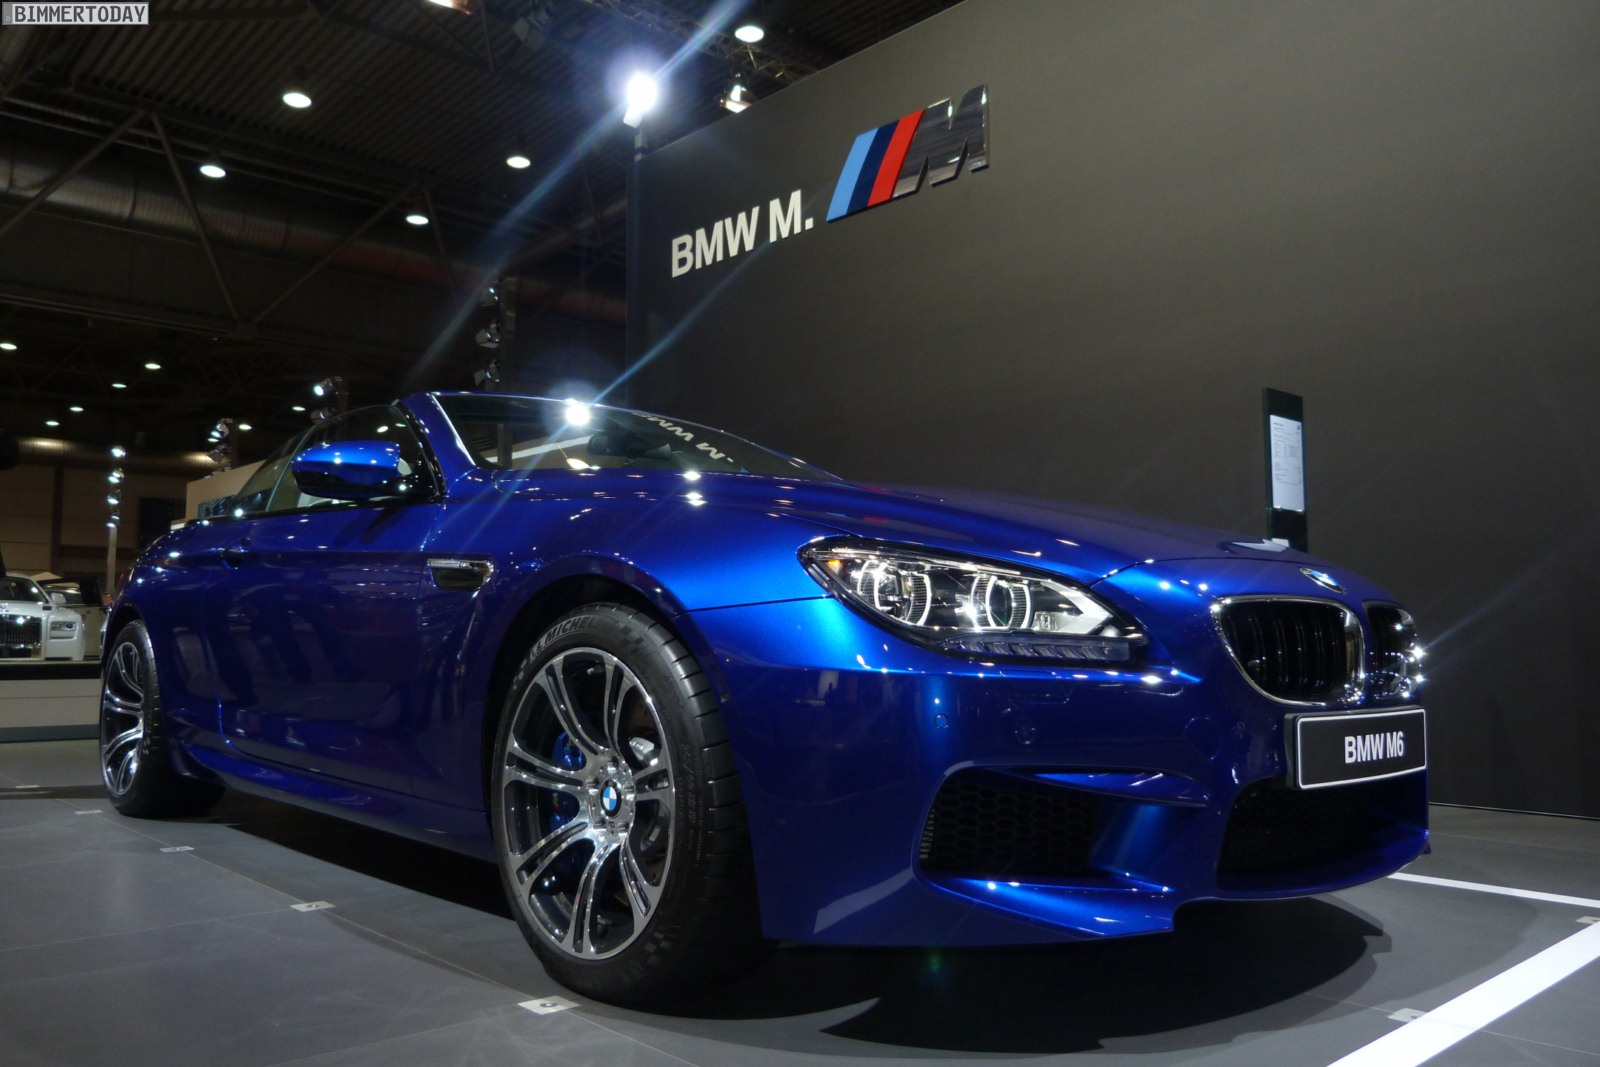 ami leipzig 2012 bmw m6 cabrio f12 in san marino blau metallic. Black Bedroom Furniture Sets. Home Design Ideas